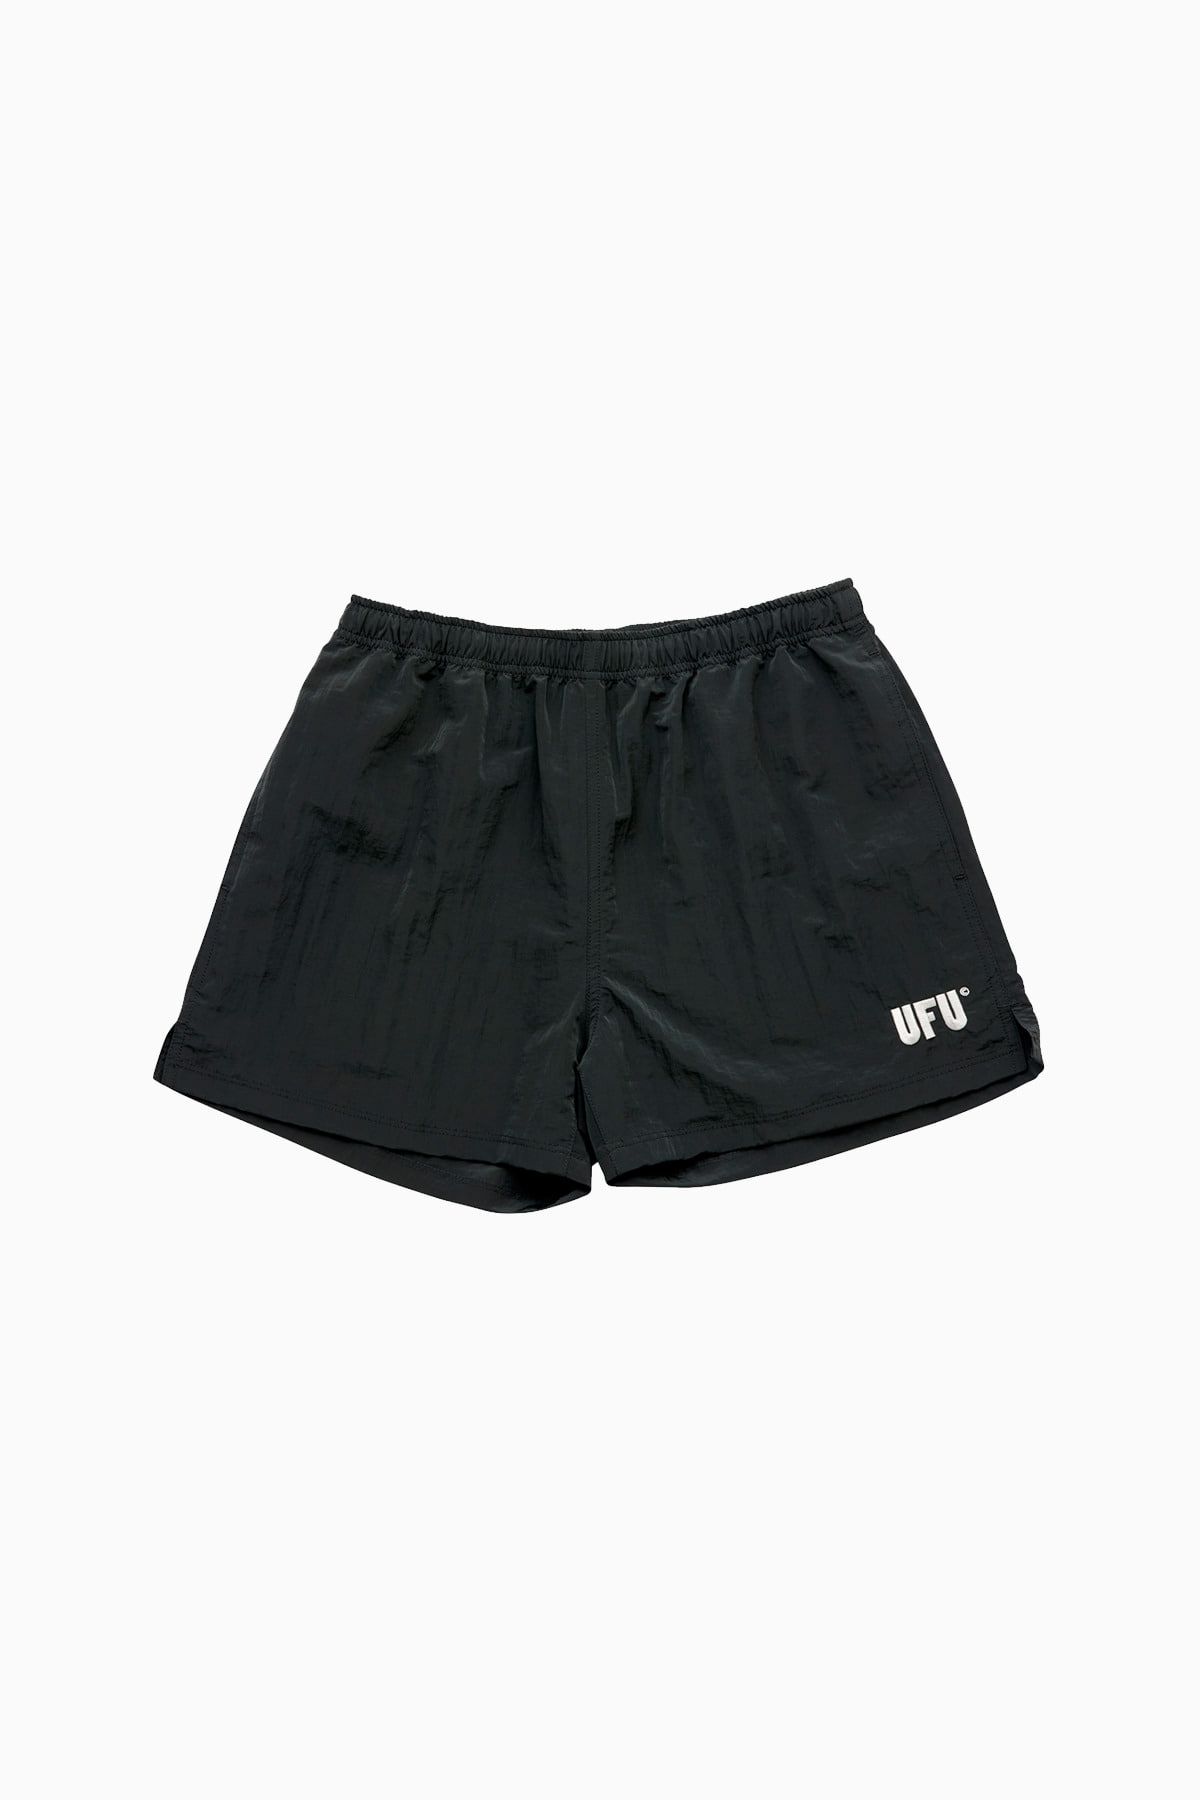 METAL SHORTS_DARK GREY